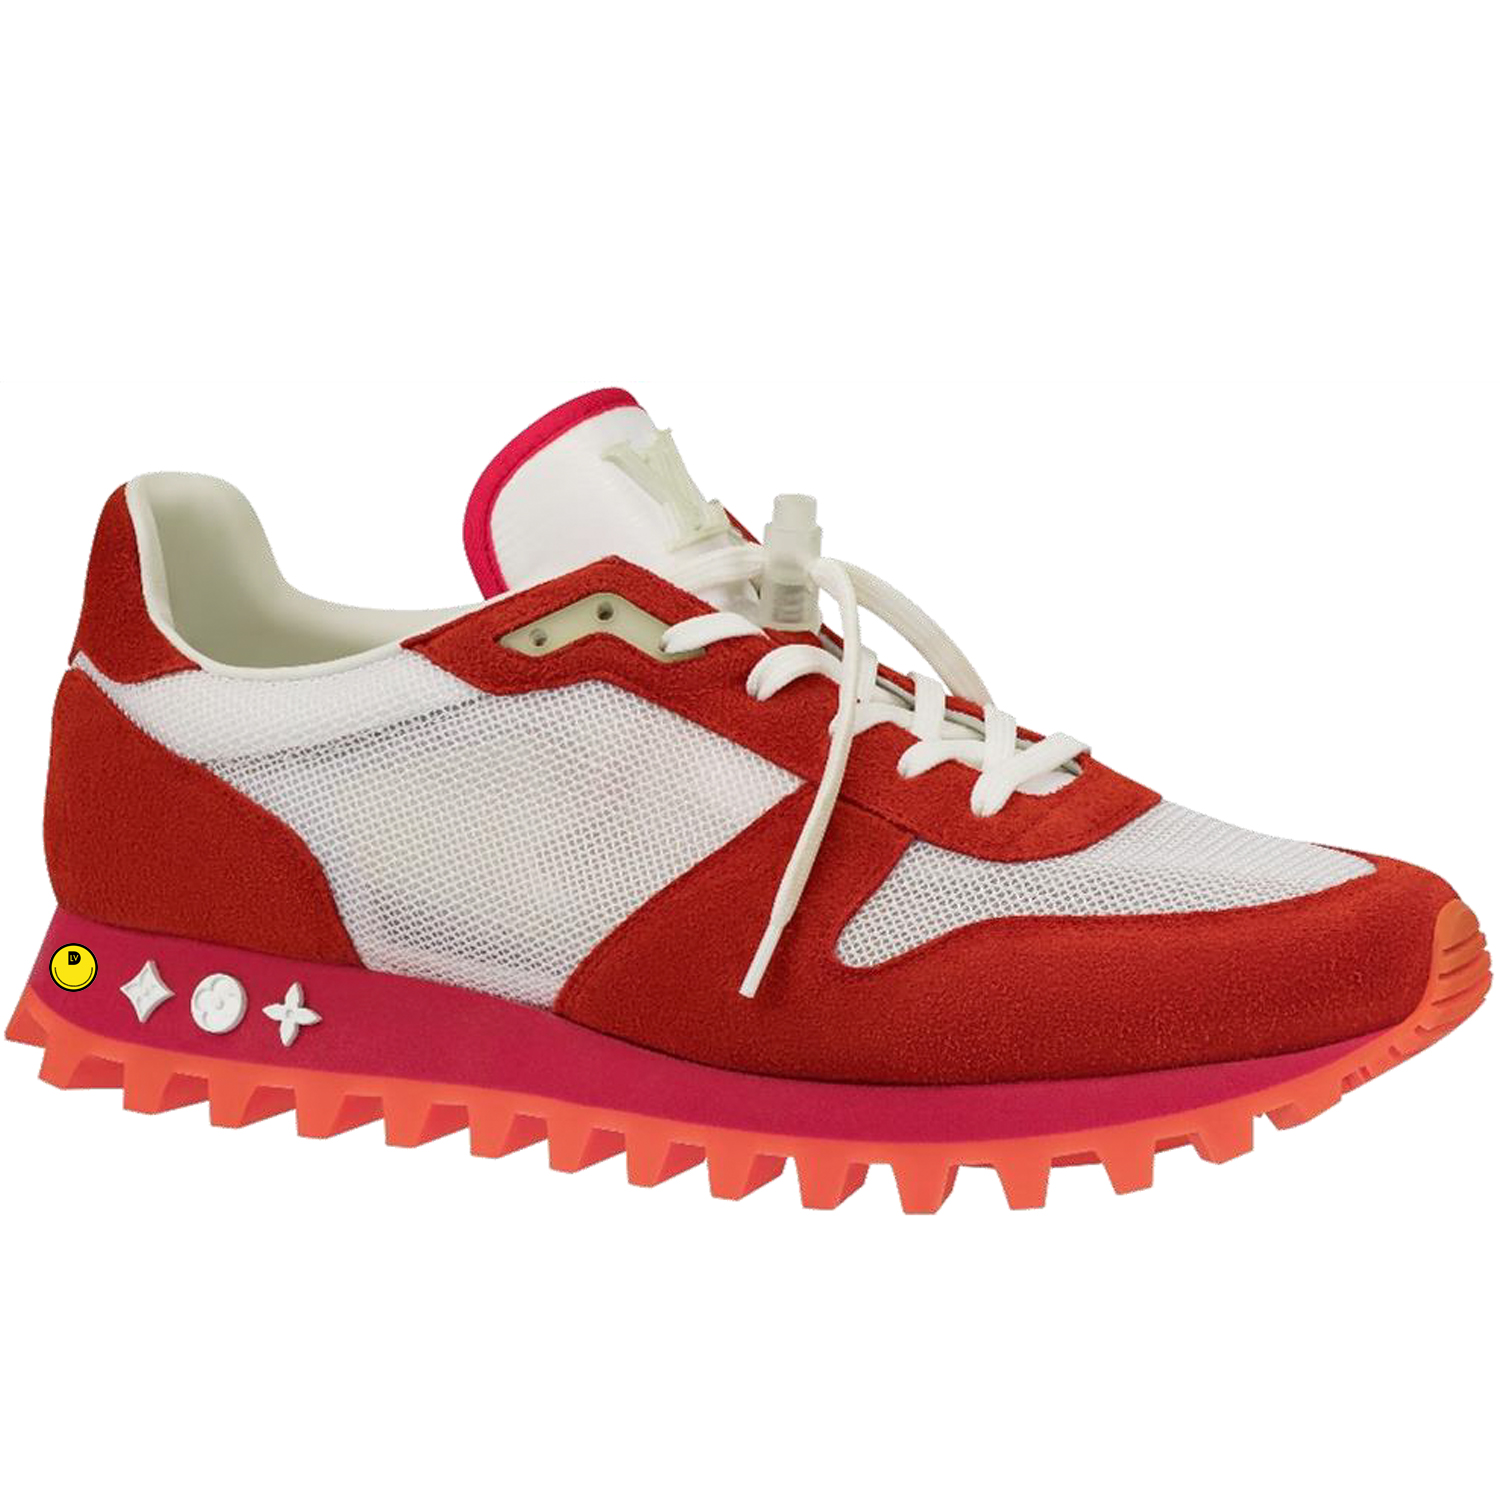 RUNNER SNEAKER - €750 $10201A54Jrrouge